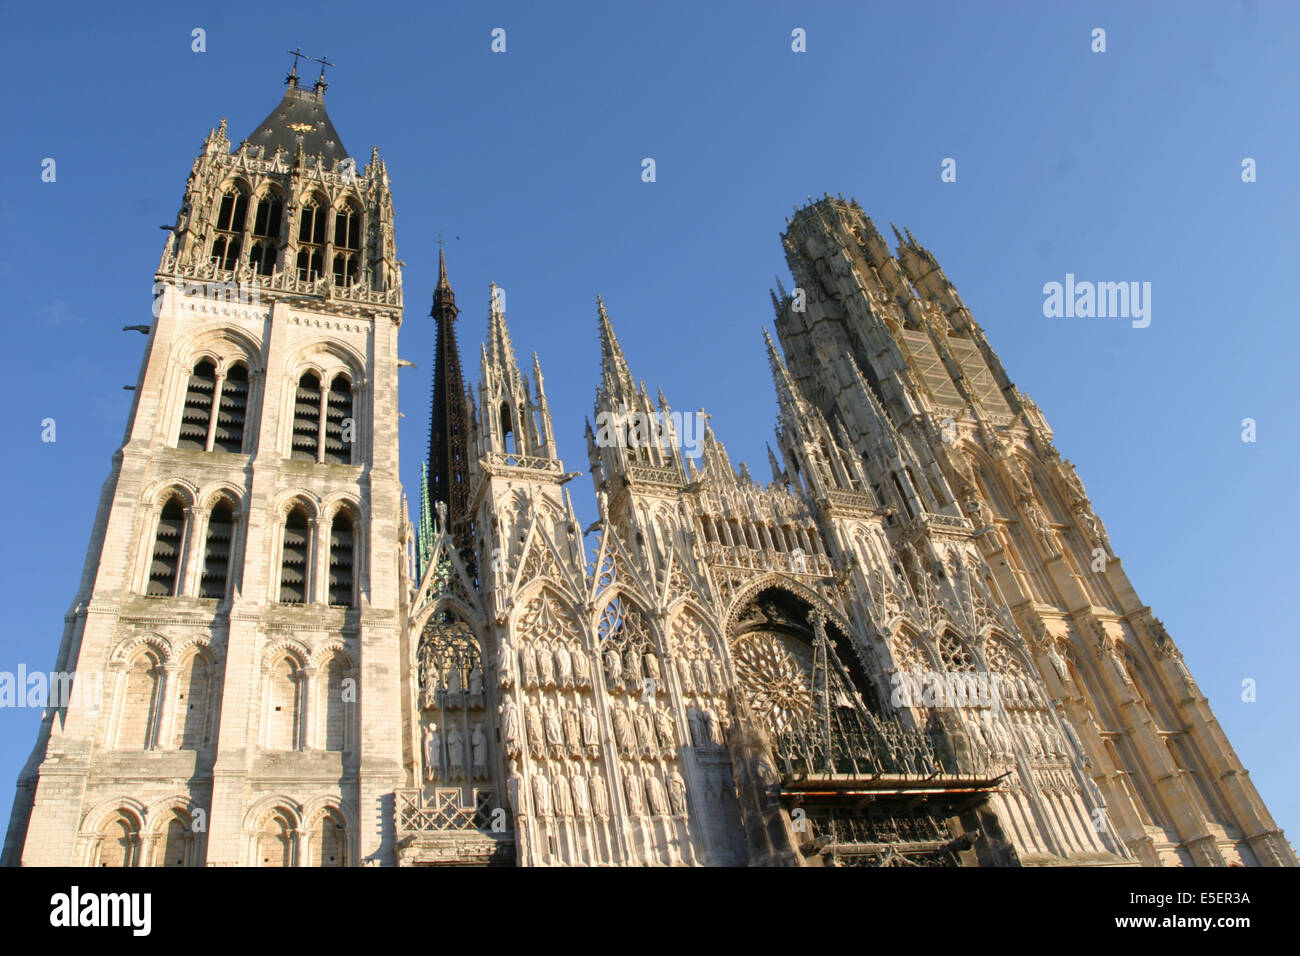 France, Normandie, seine maritime, rouen, facade de la cathedrale, tour saint romain, tour de beurre, ciel bleu, Stock Photo